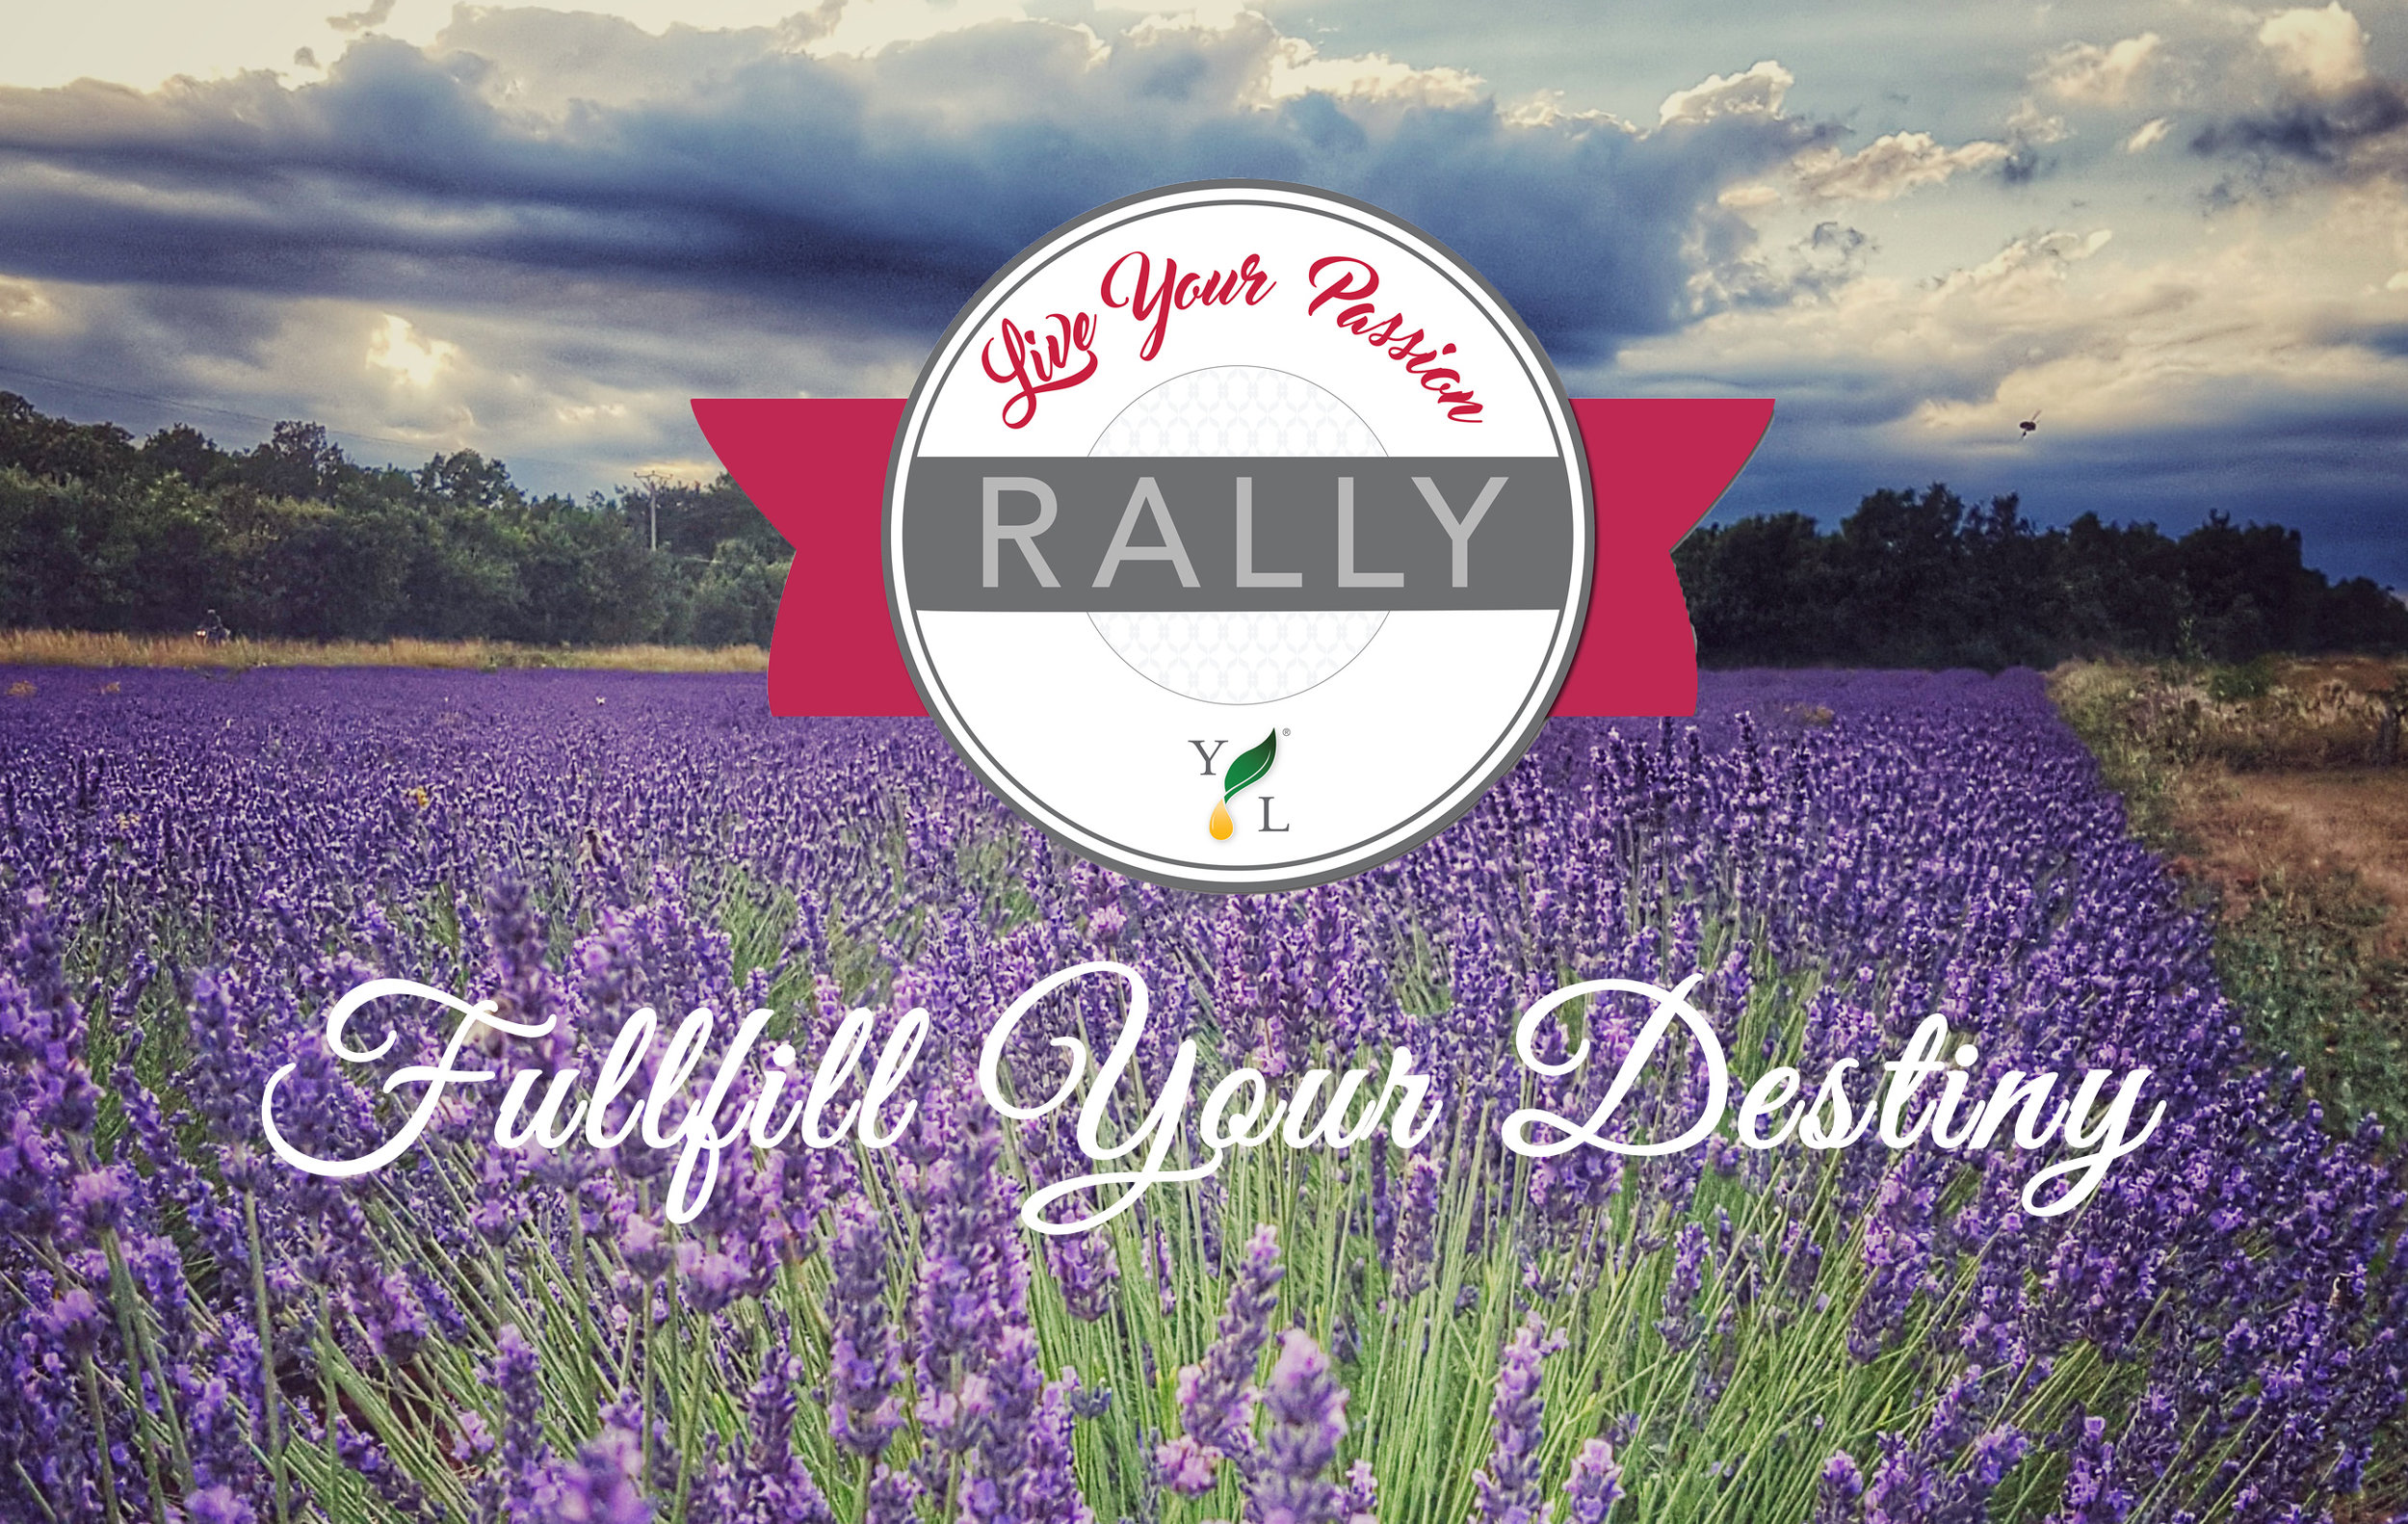 NO-yl-rally-lavender-field.jpg